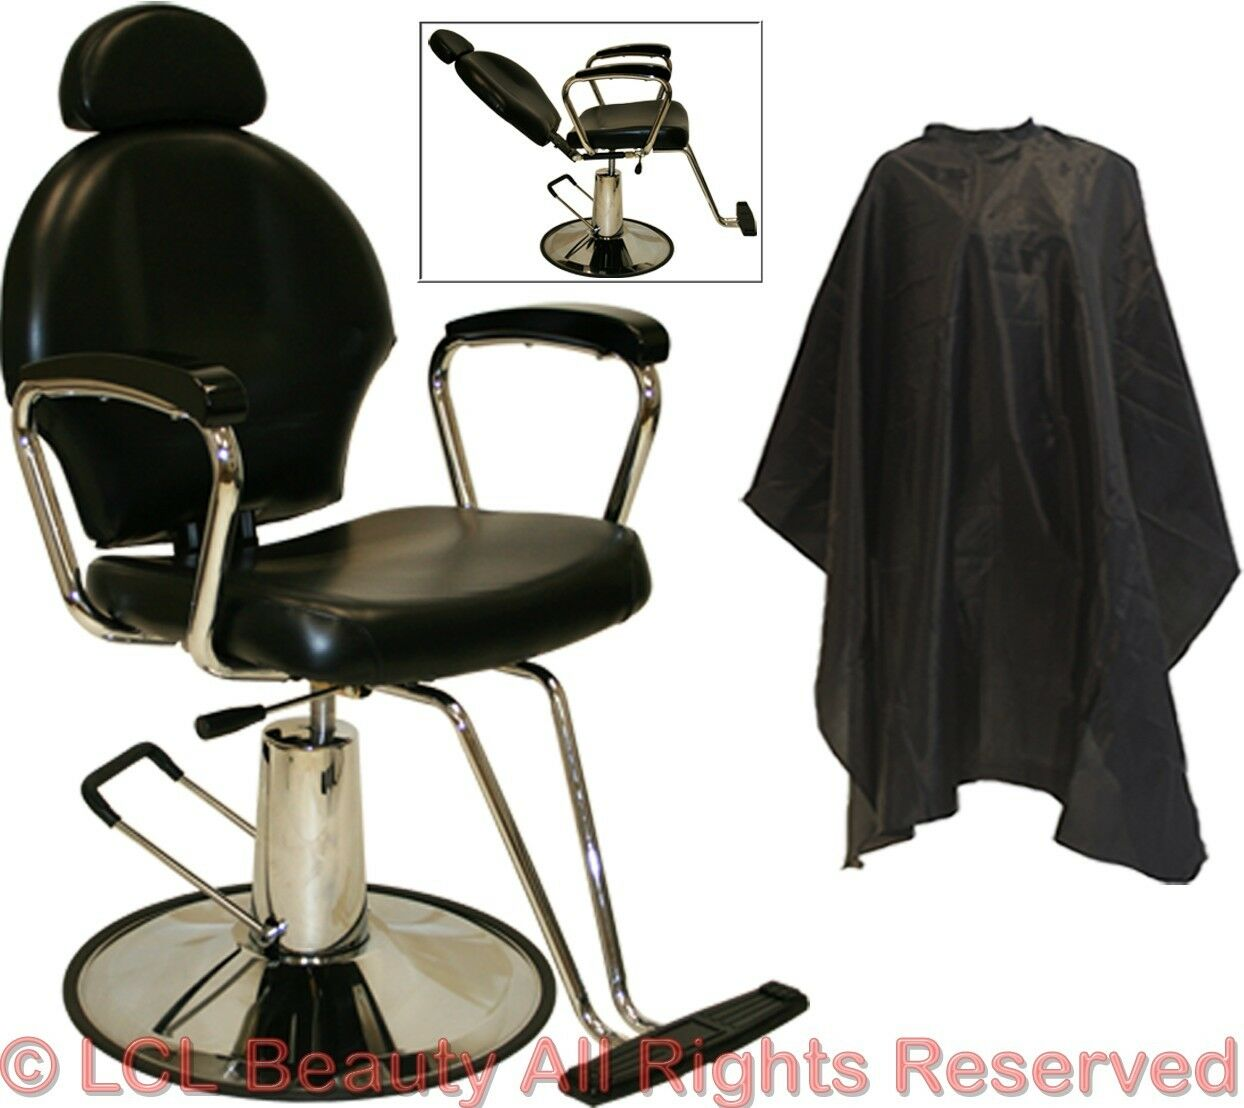 beauty salon chairs images portable folding floor equipment pictures joy studio design